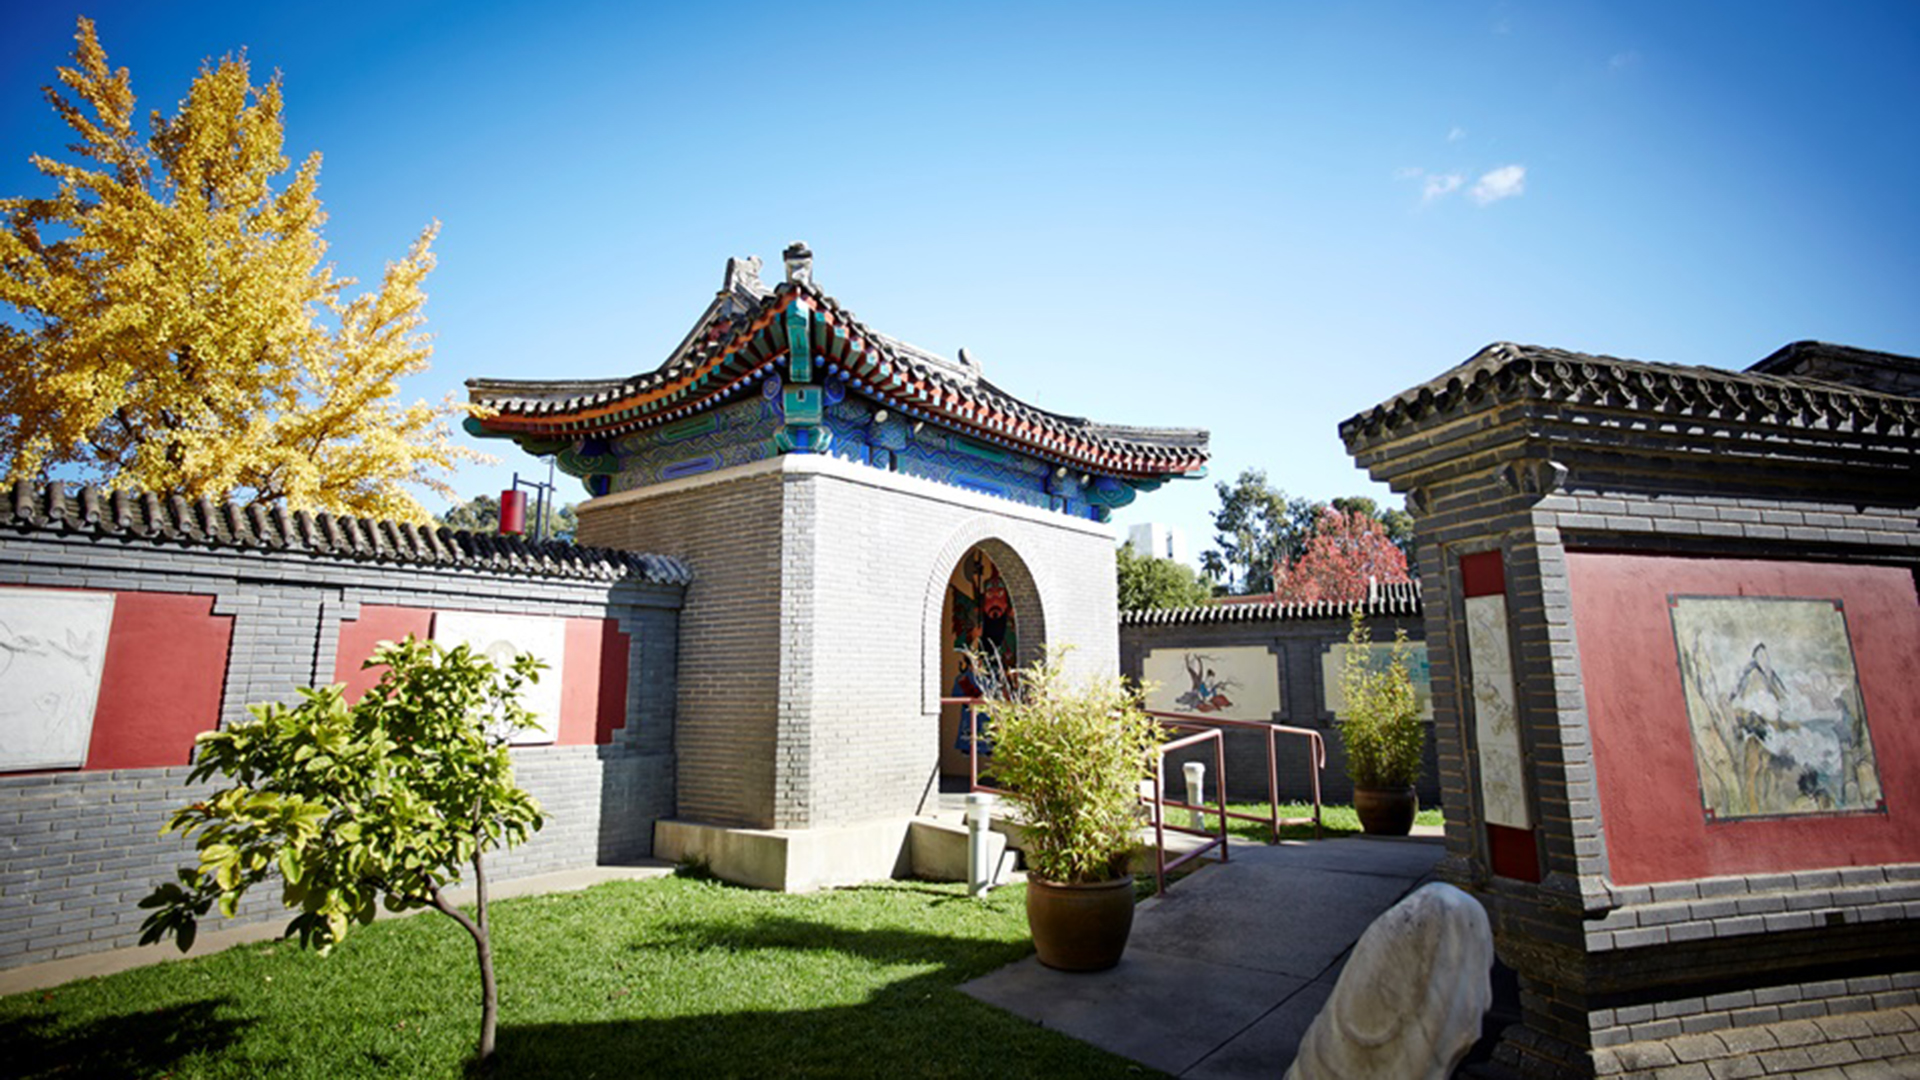 Entrance to the gardens at Golden Dragon Museum